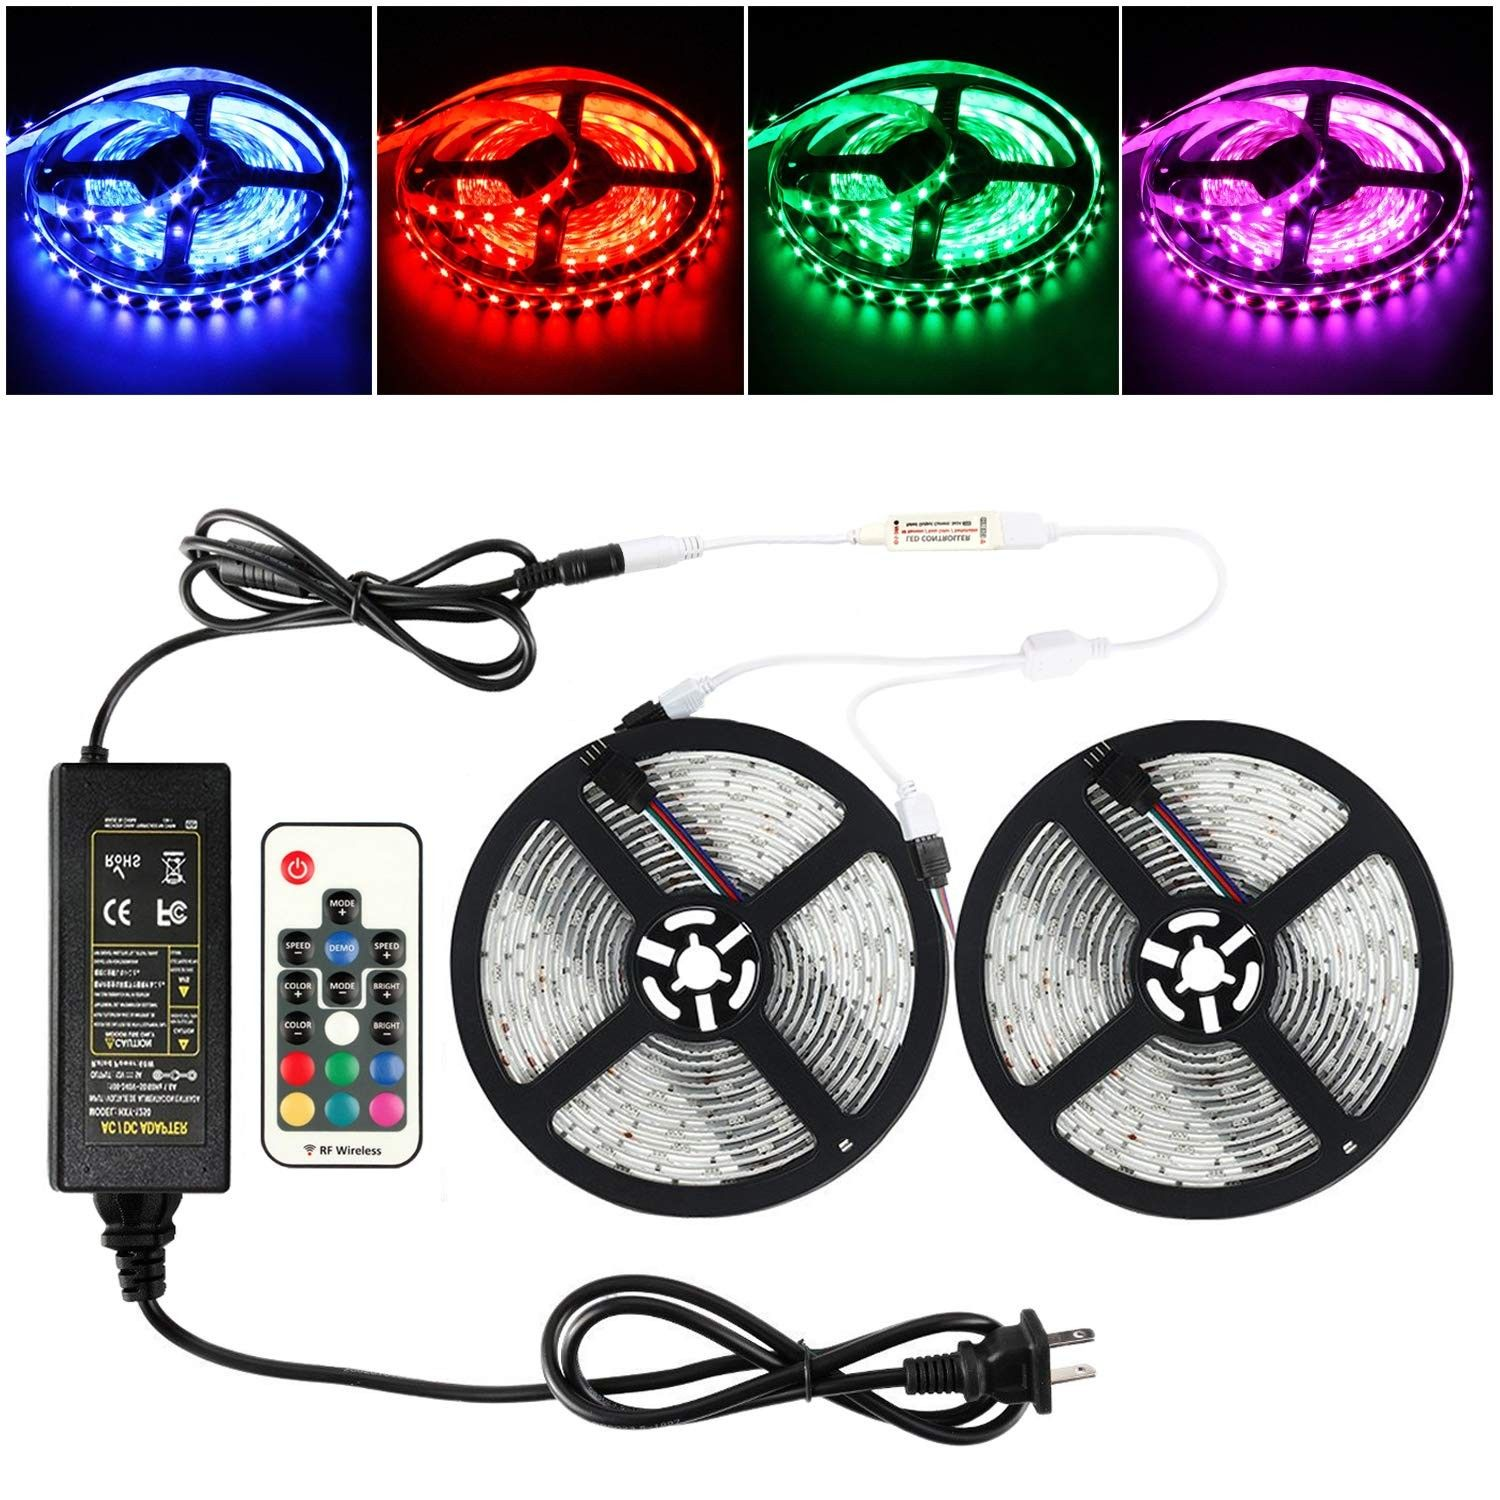 10m Led Light Strips Waterproof Flexible Rgb Smd5050 150 Led Strips Kit With Remote And 12v Power Supply Rgb Strip For Party Holiday Home And Outdoor Co18d6re Led Light Strips Strip